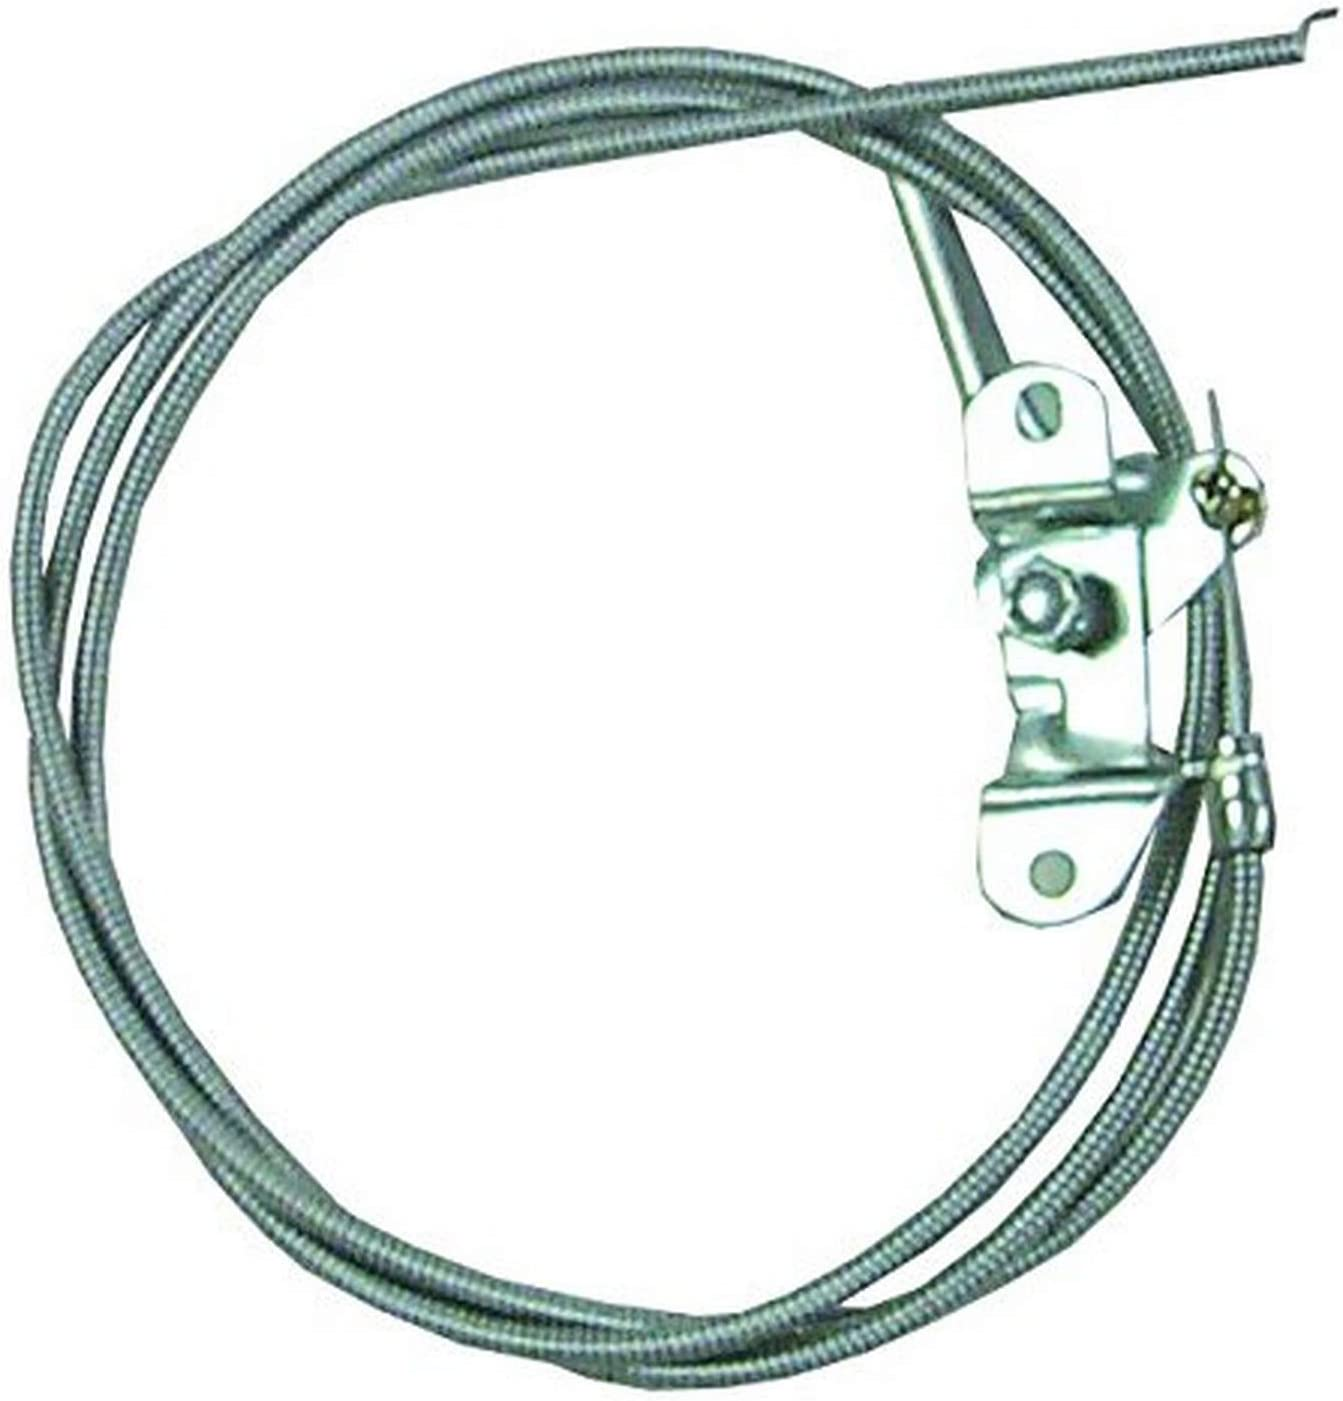 NEW Oregon Throttle Cable with Control Lever 60-210